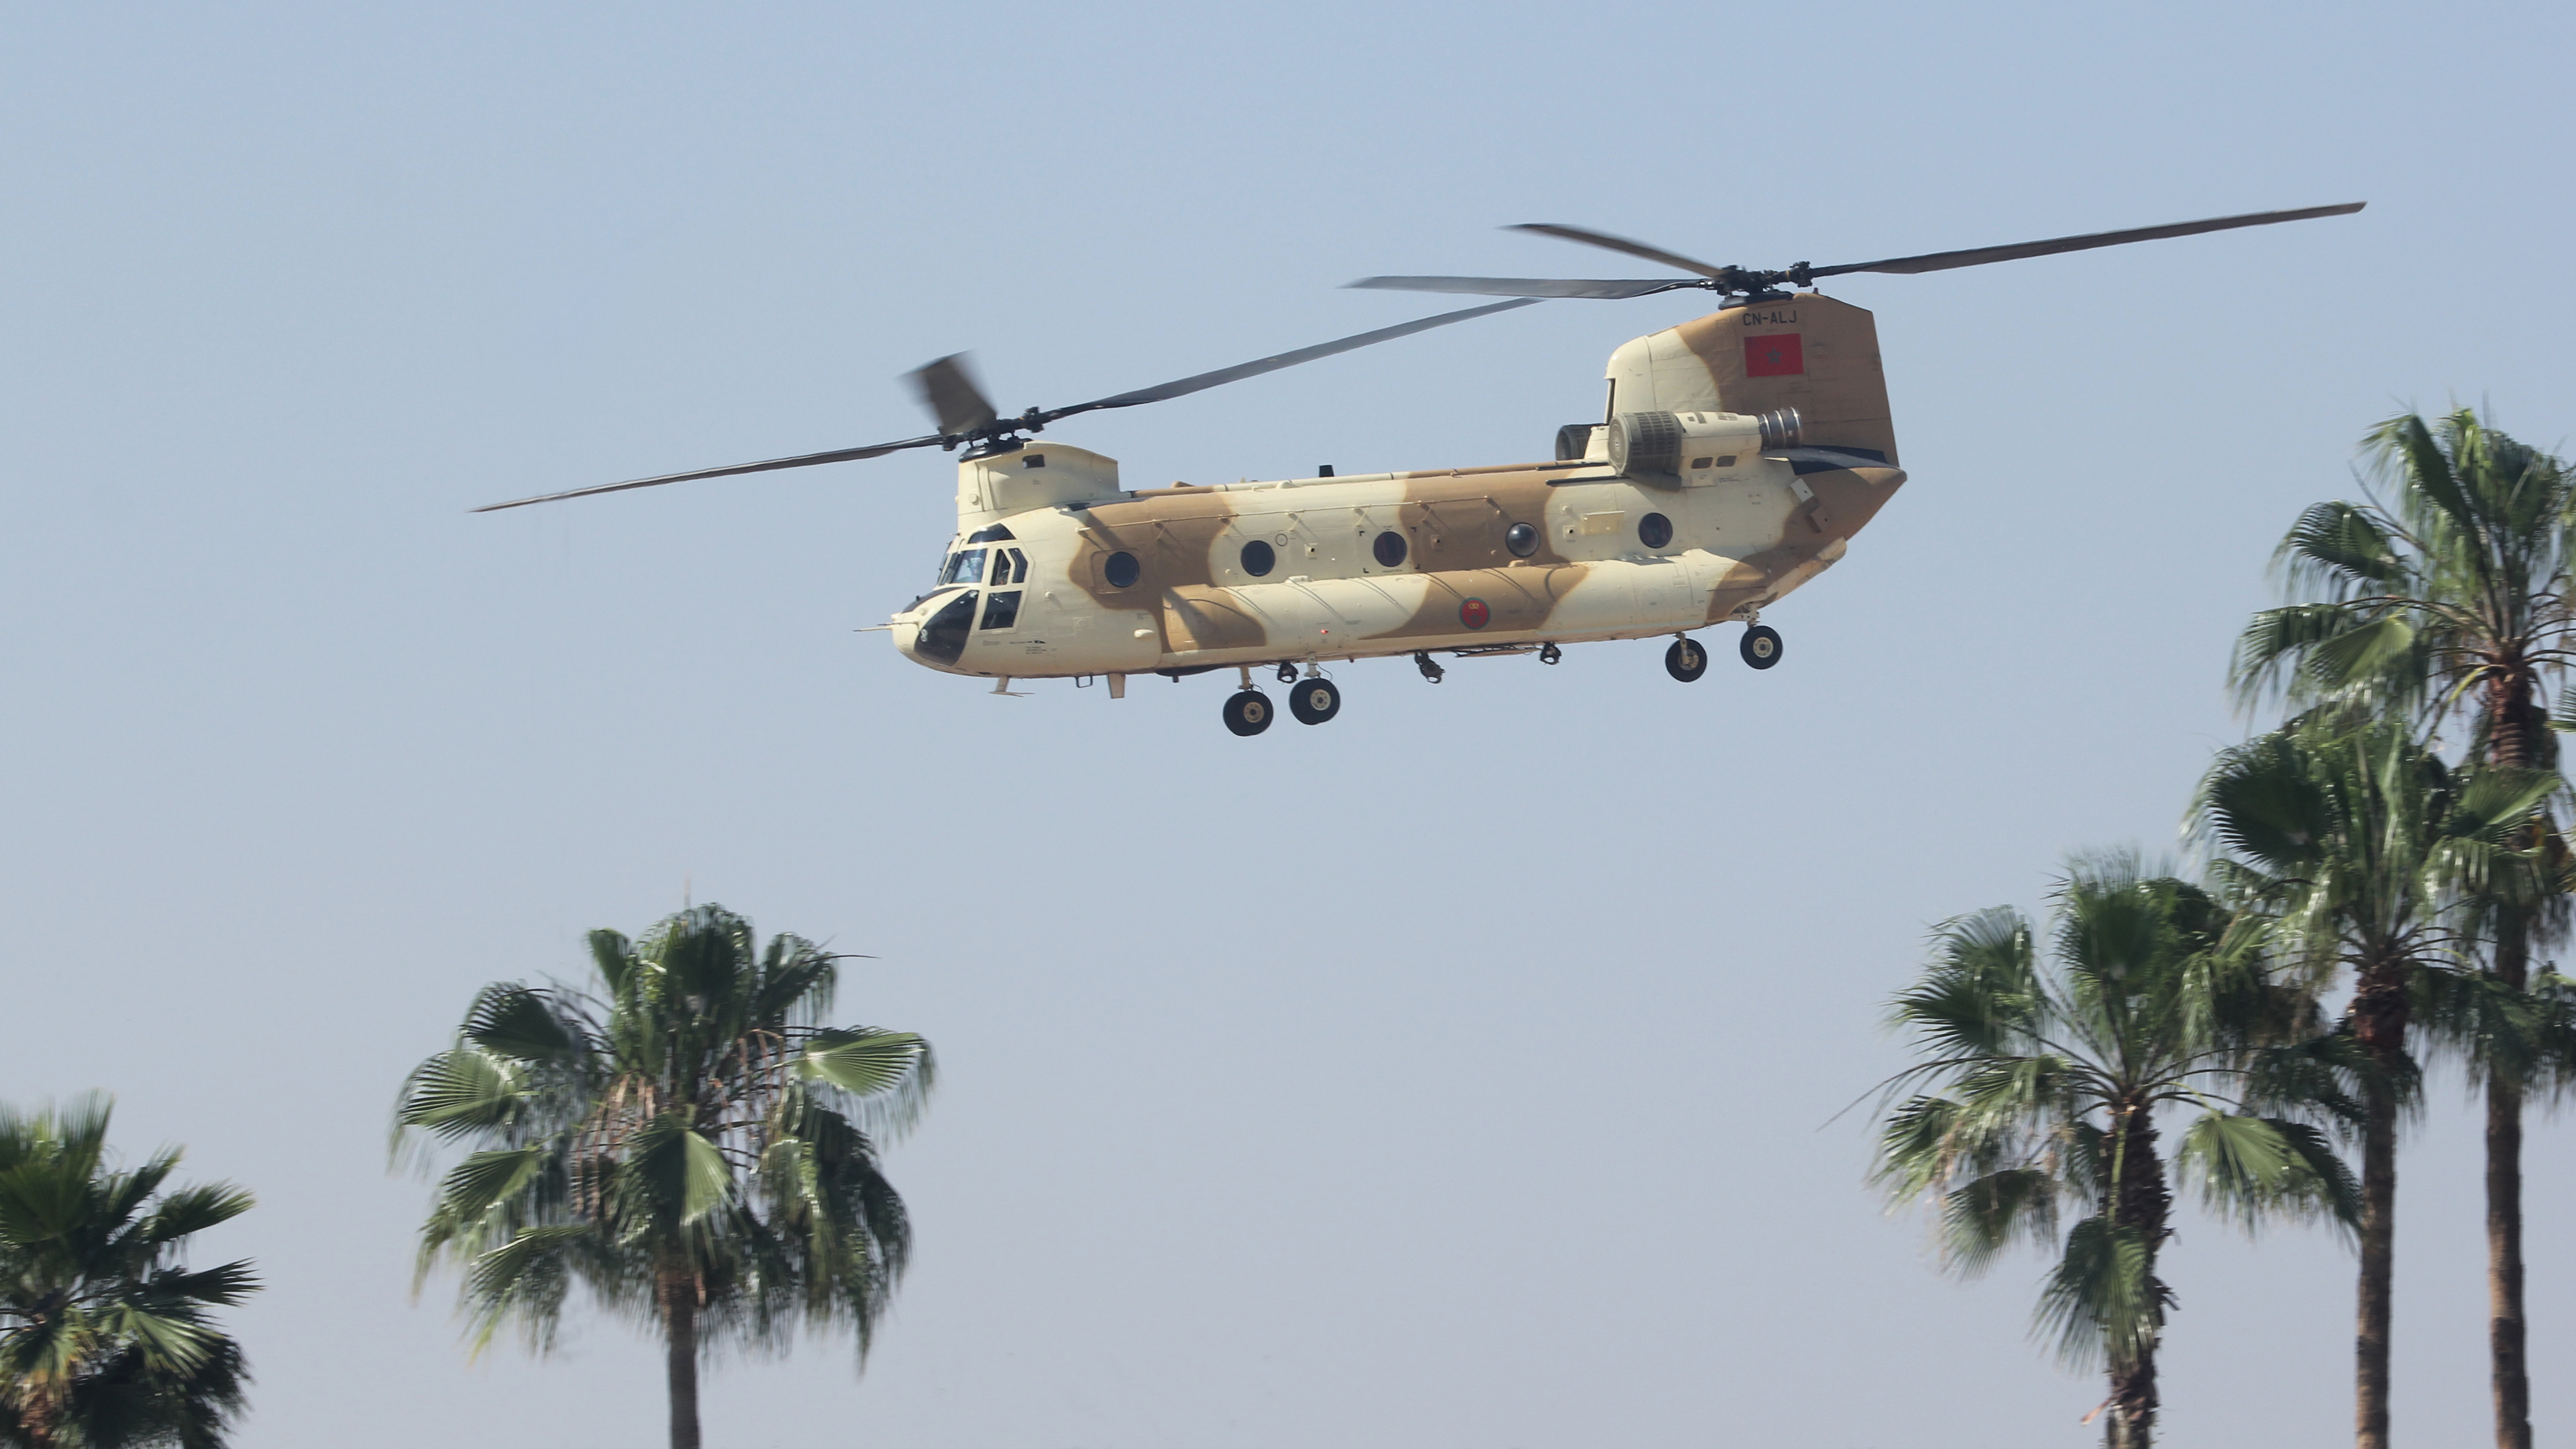 CH-47D CHINOOK des Forces Royales Air  - Page 3 32246137657_30eca2bb8b_o